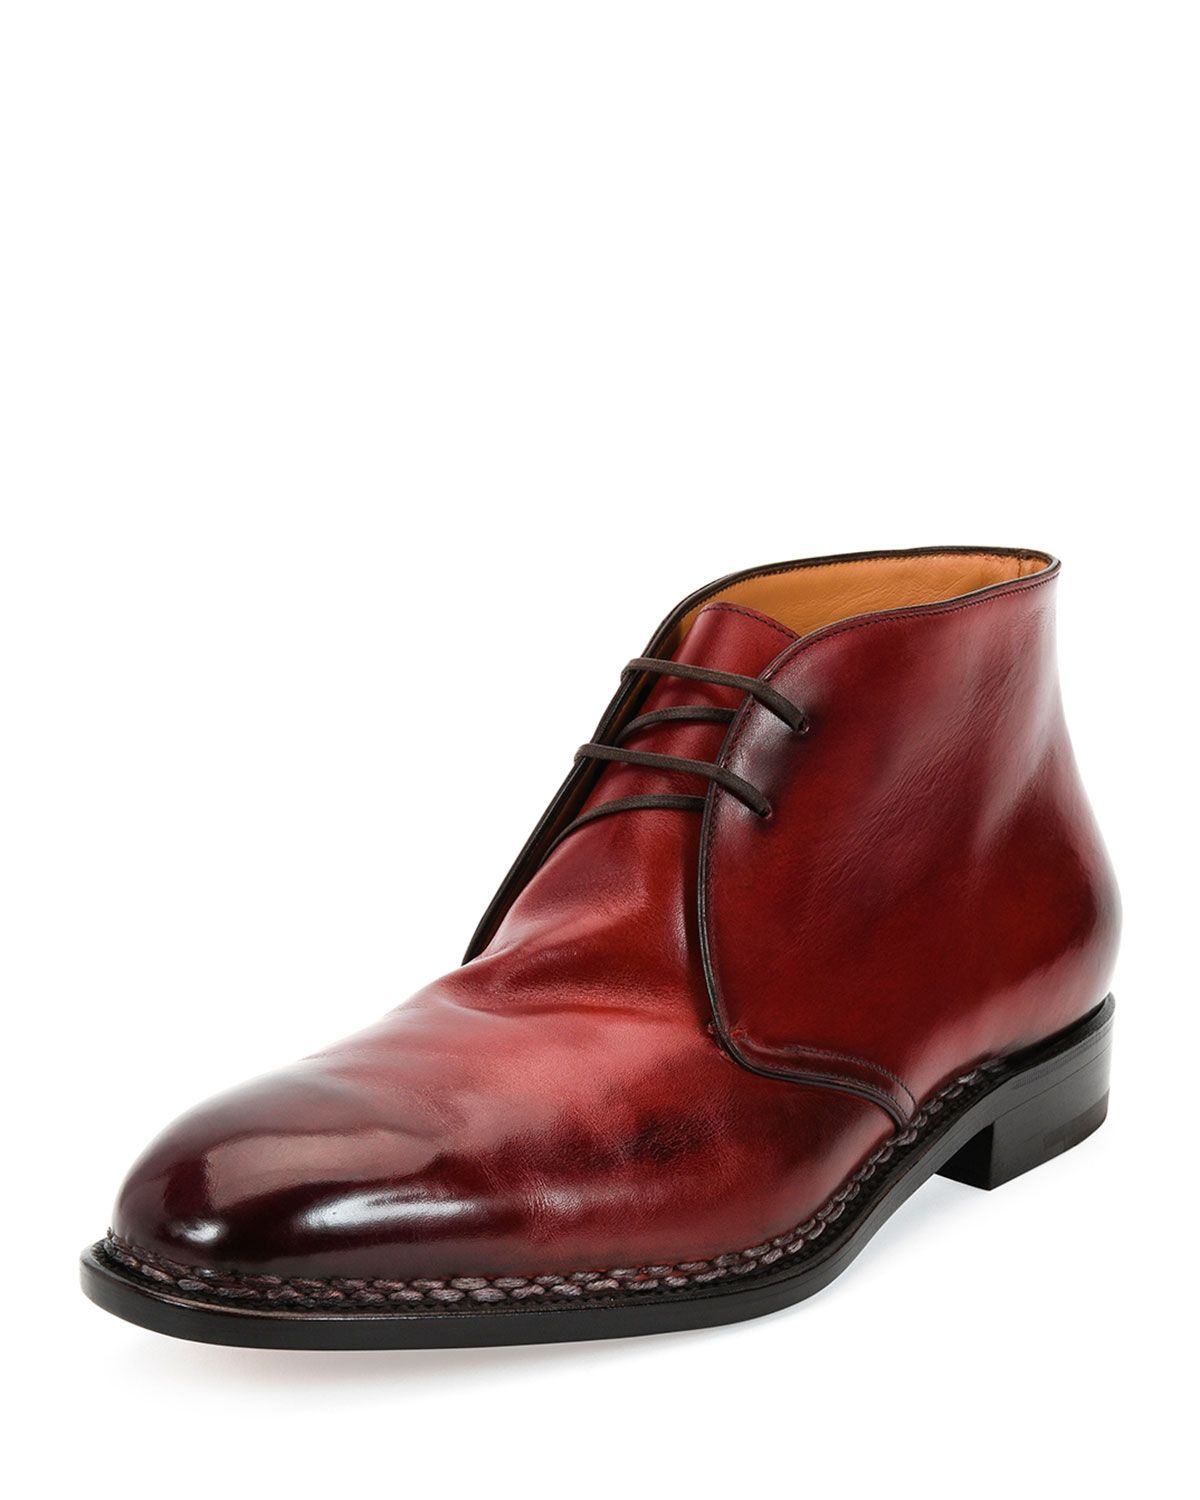 Salvatore Ferragamo Palermo 2 Tramezza Special Edition Burnished Calfskin Chukka Boot with Norwegian Welt, Red